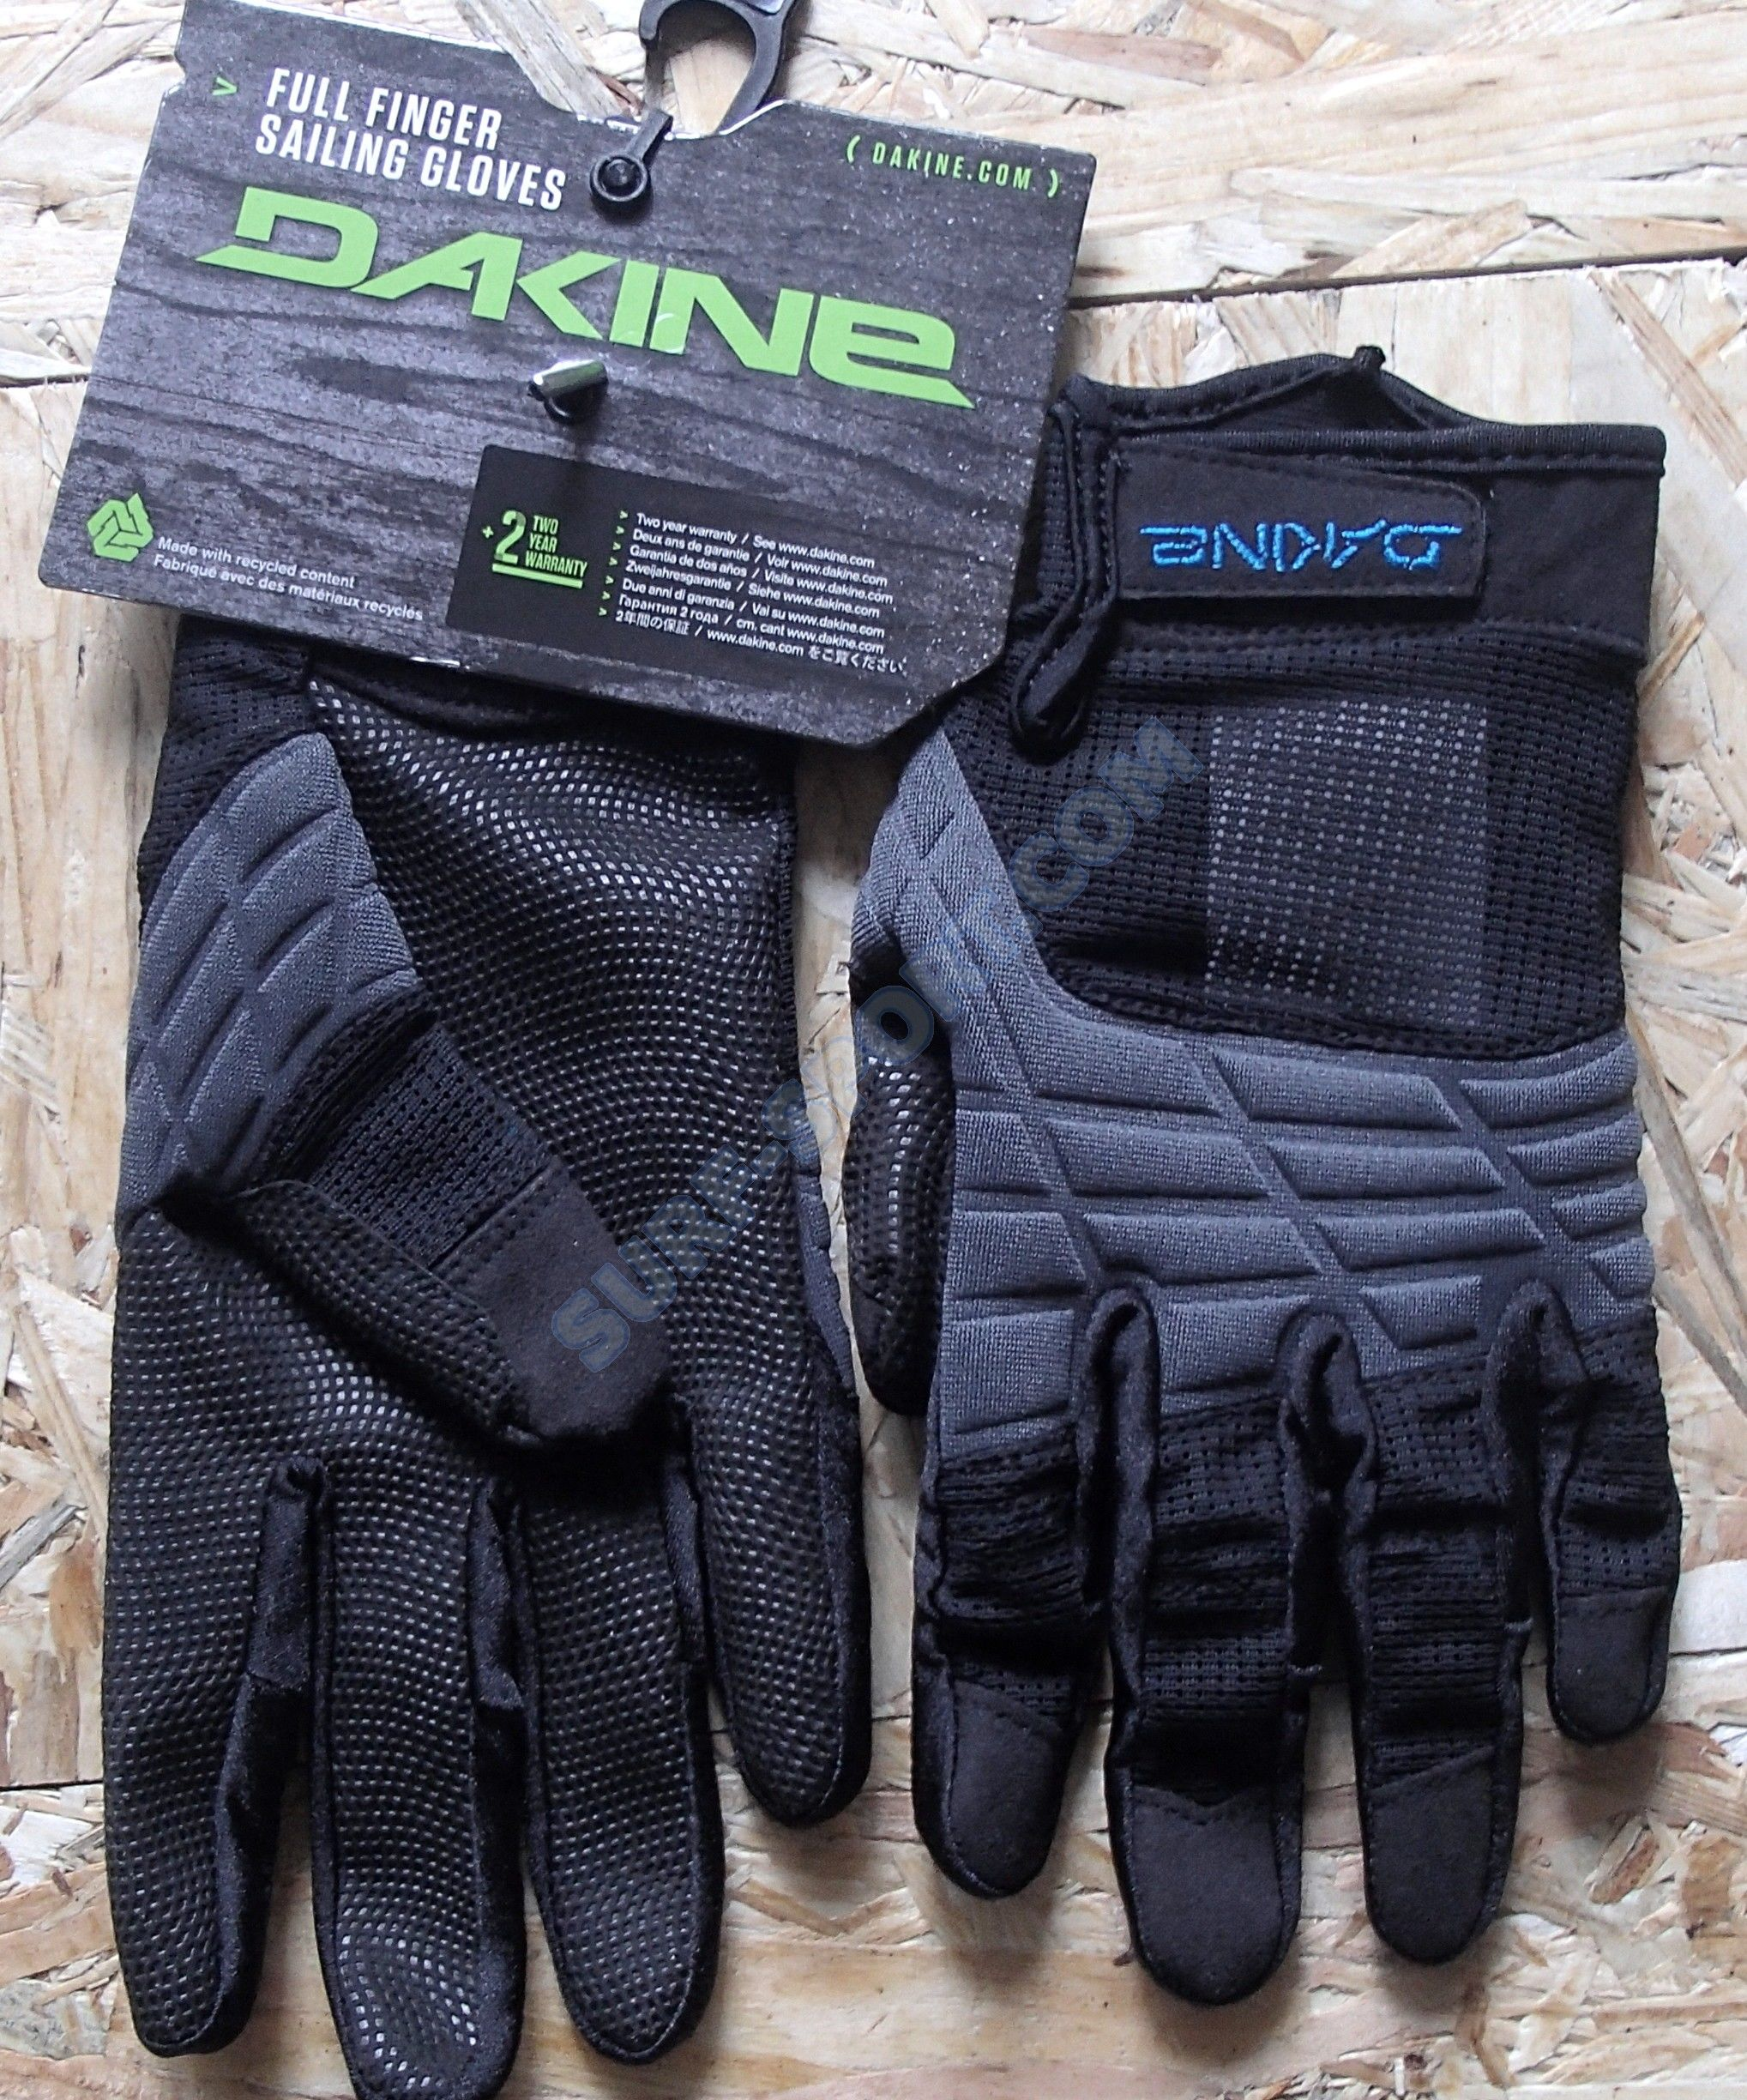 Rękawice Dakine Full Finger Sailing Black